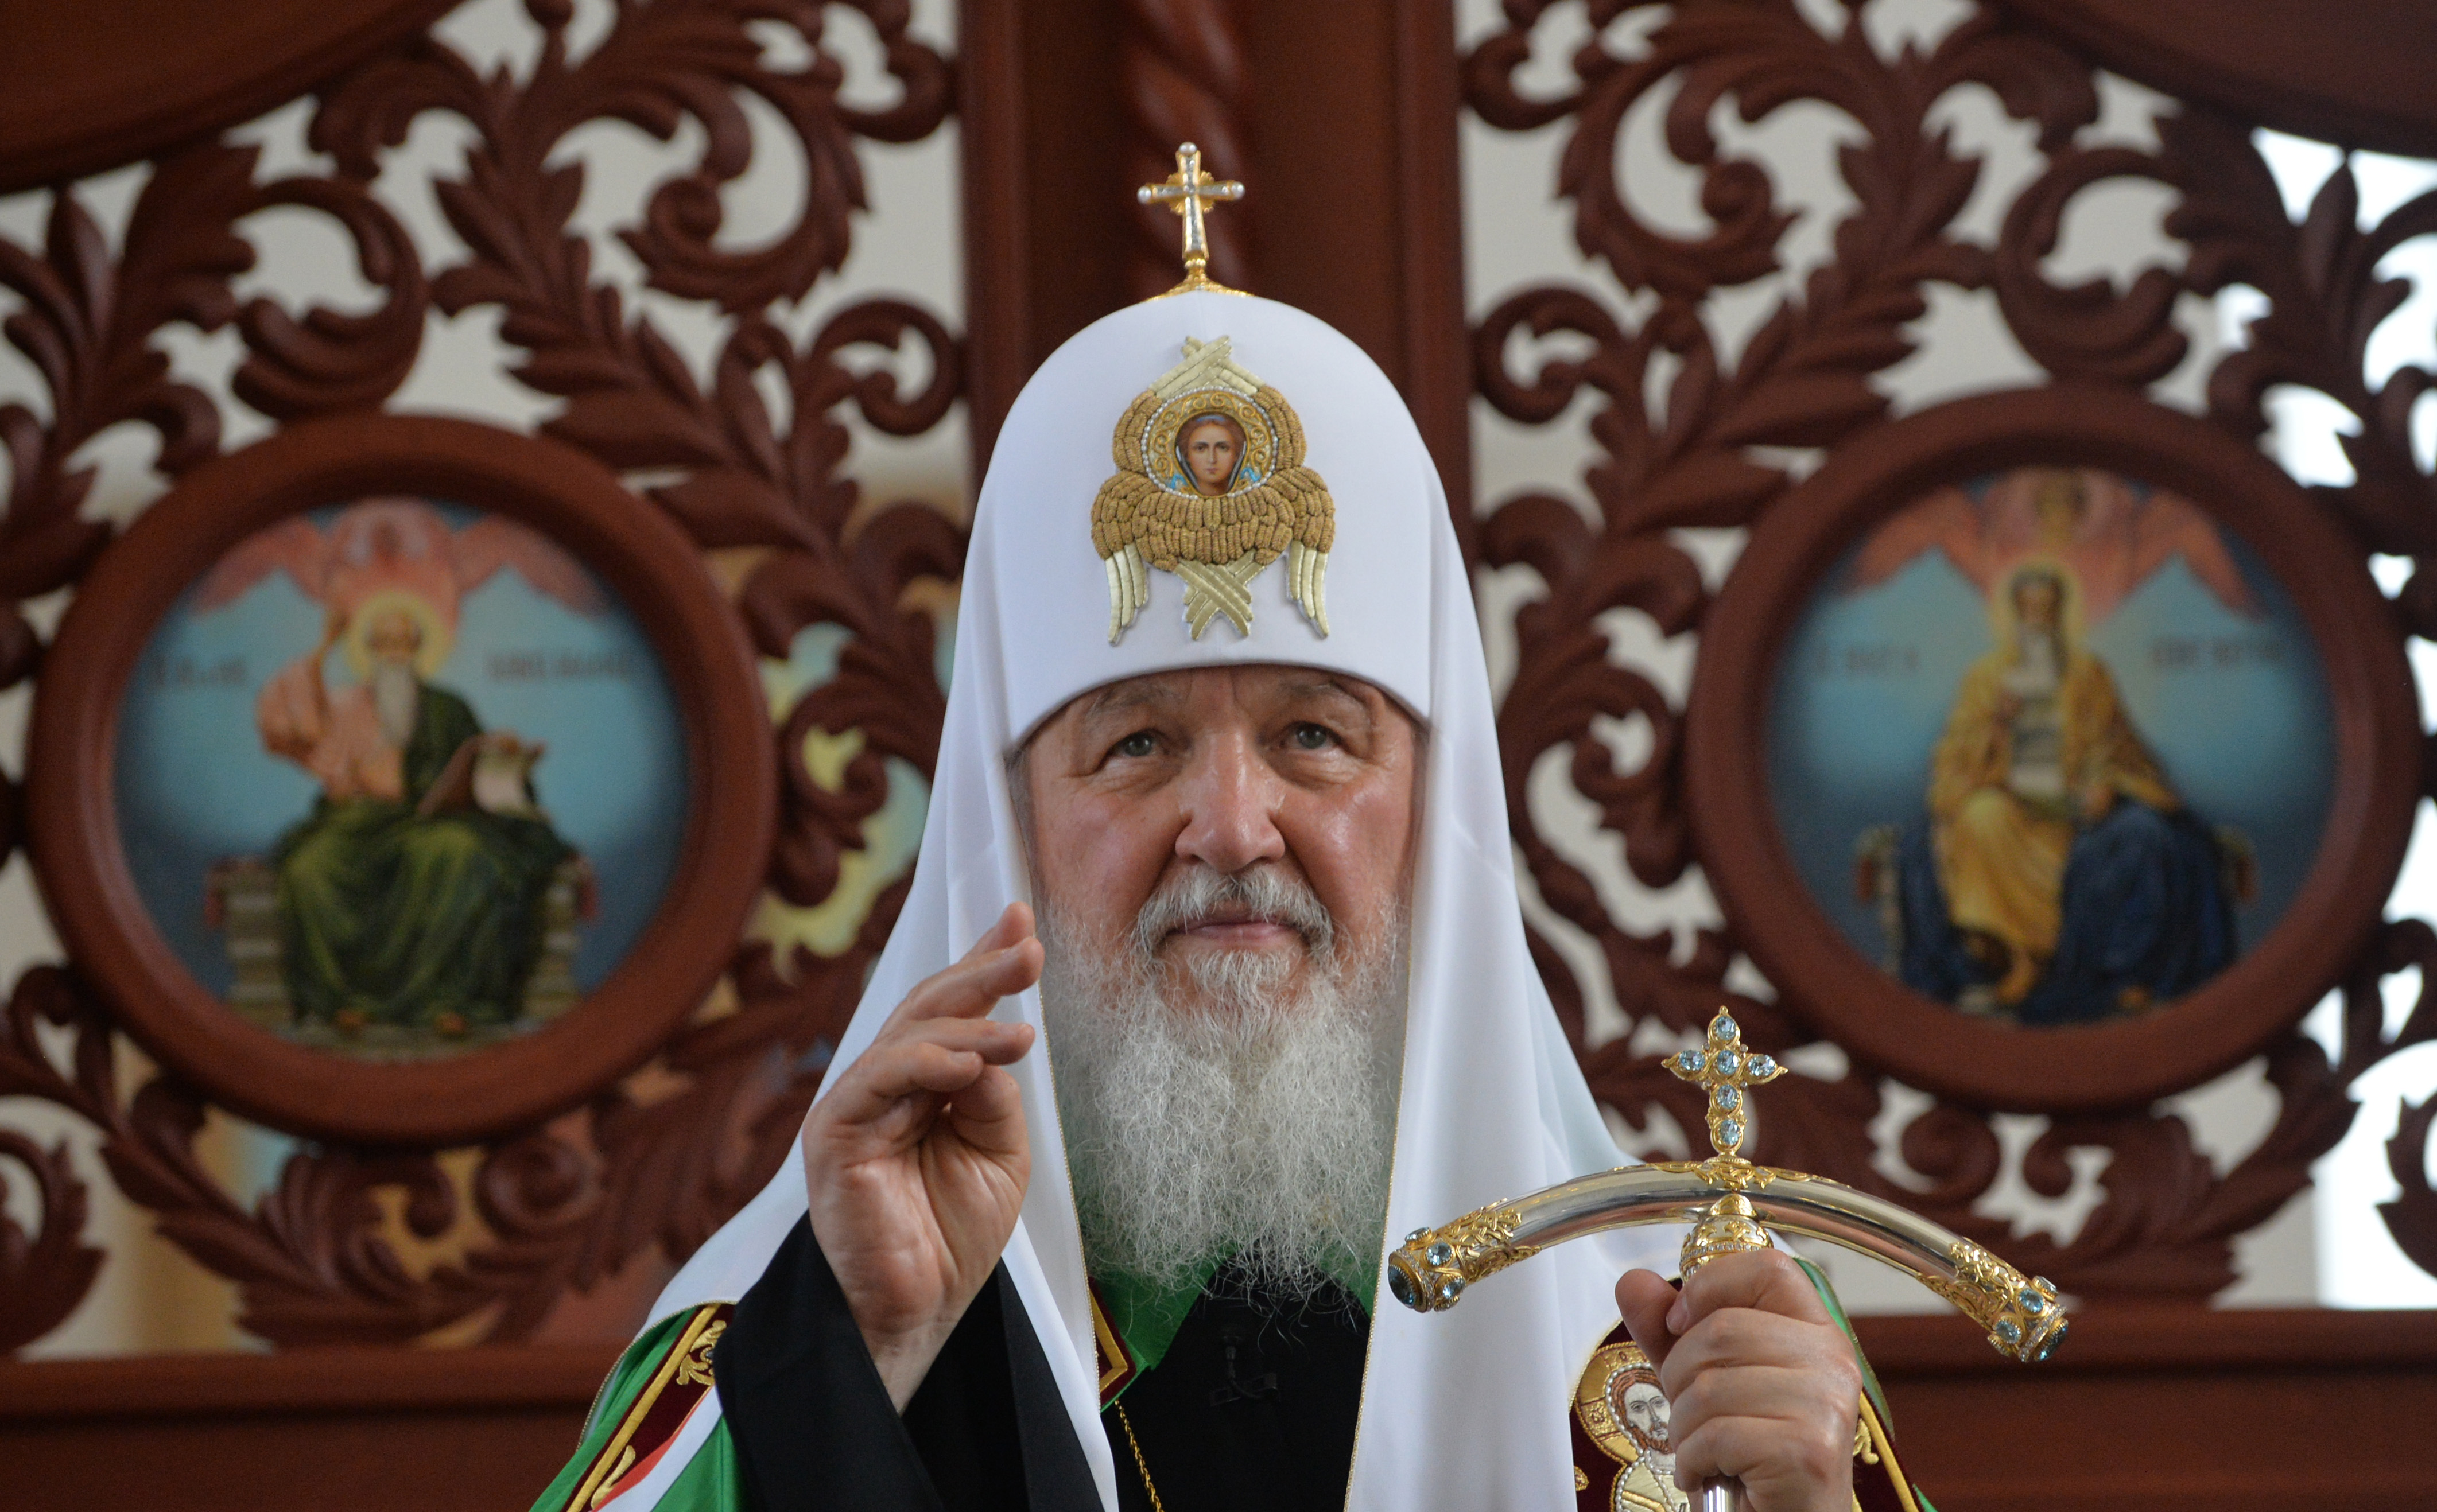 Russian Orthodox Patriarch Kirill conducts a service at the Holy Resurrection Cathedral in Bishkek, Kyrgyzstan, on May 28, 2017.